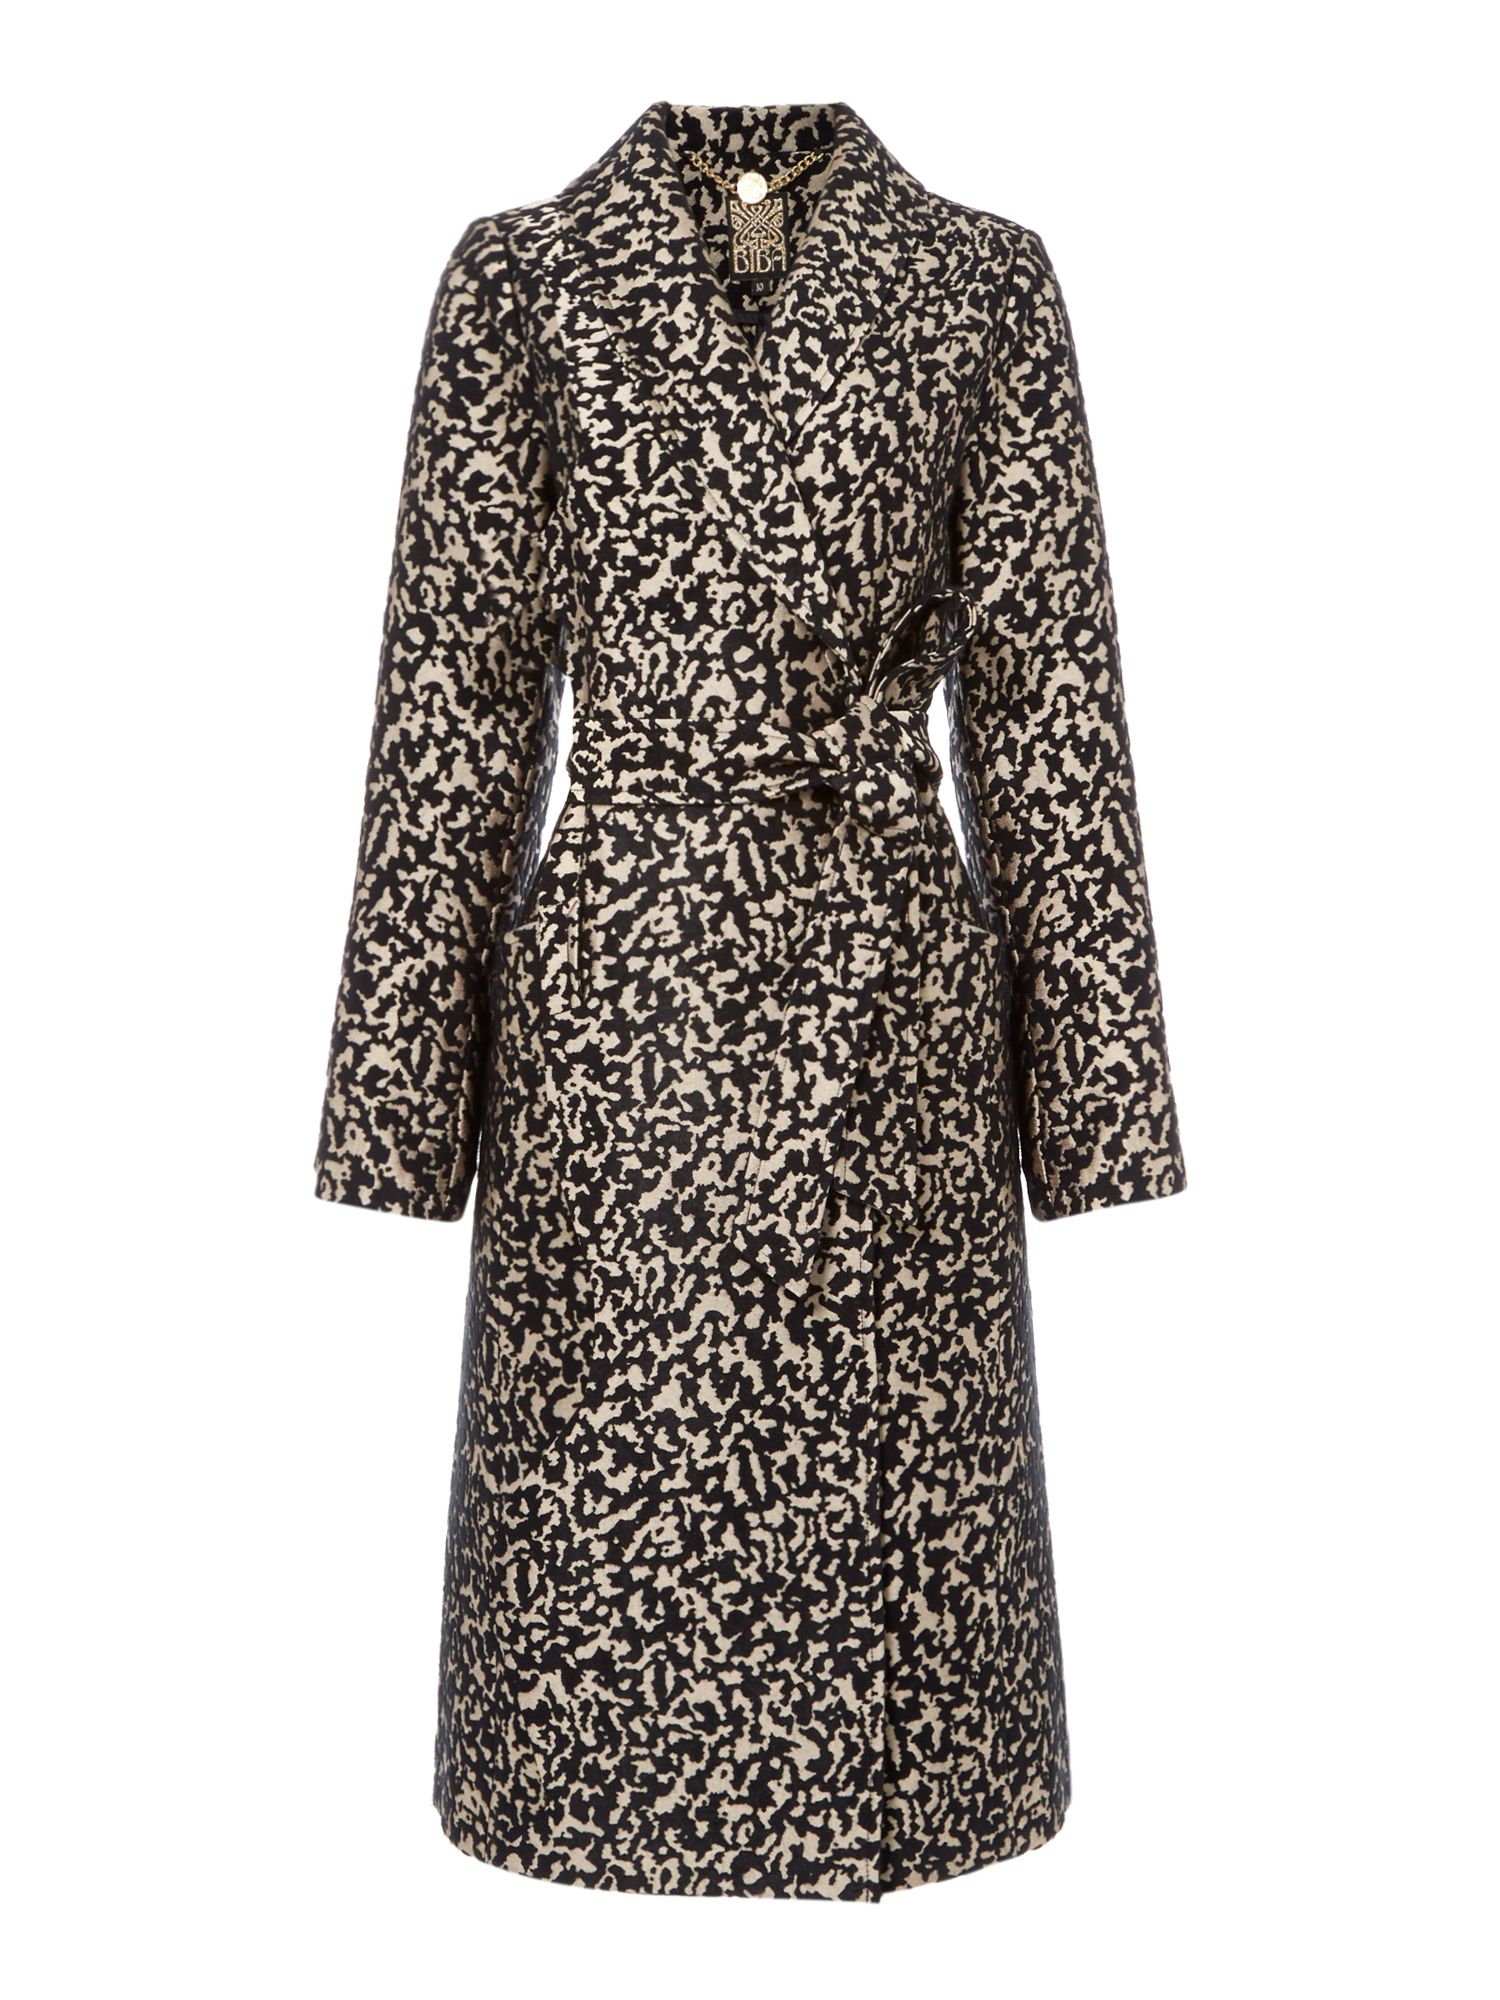 Biba Abstract Leopard Belted Coat, Multi-Coloured